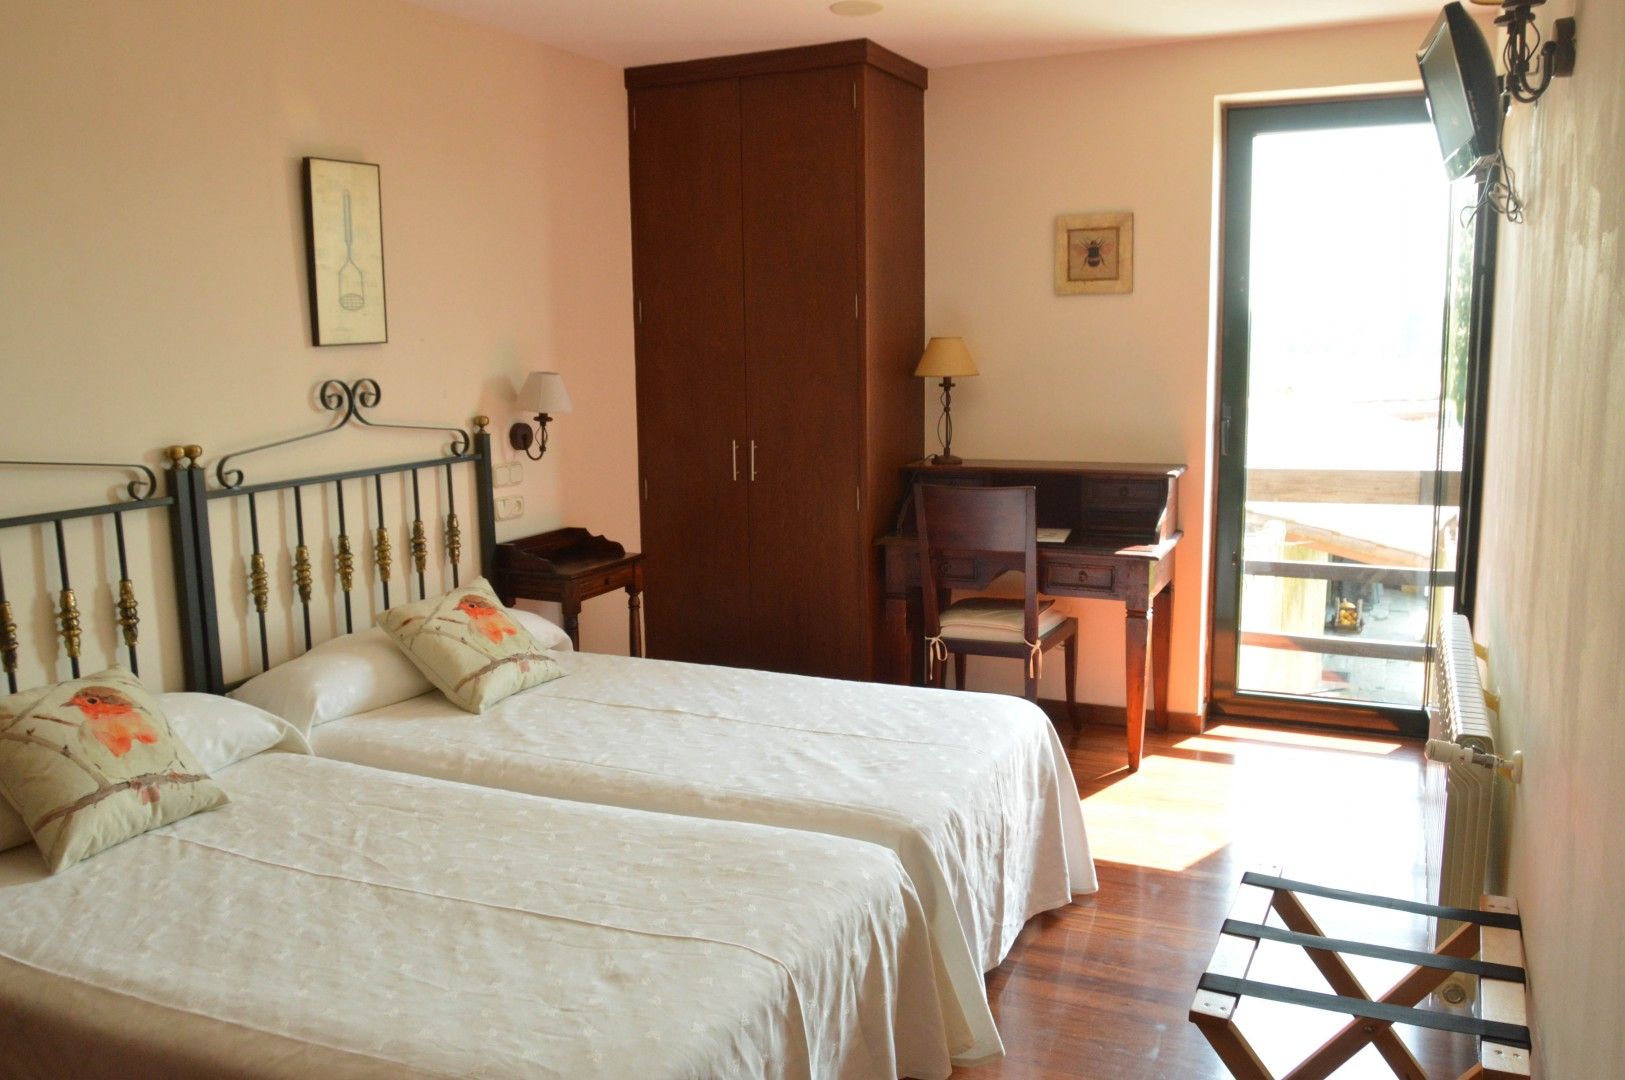 Baamonde to santiago de compostela charming hotels for Charming hotels